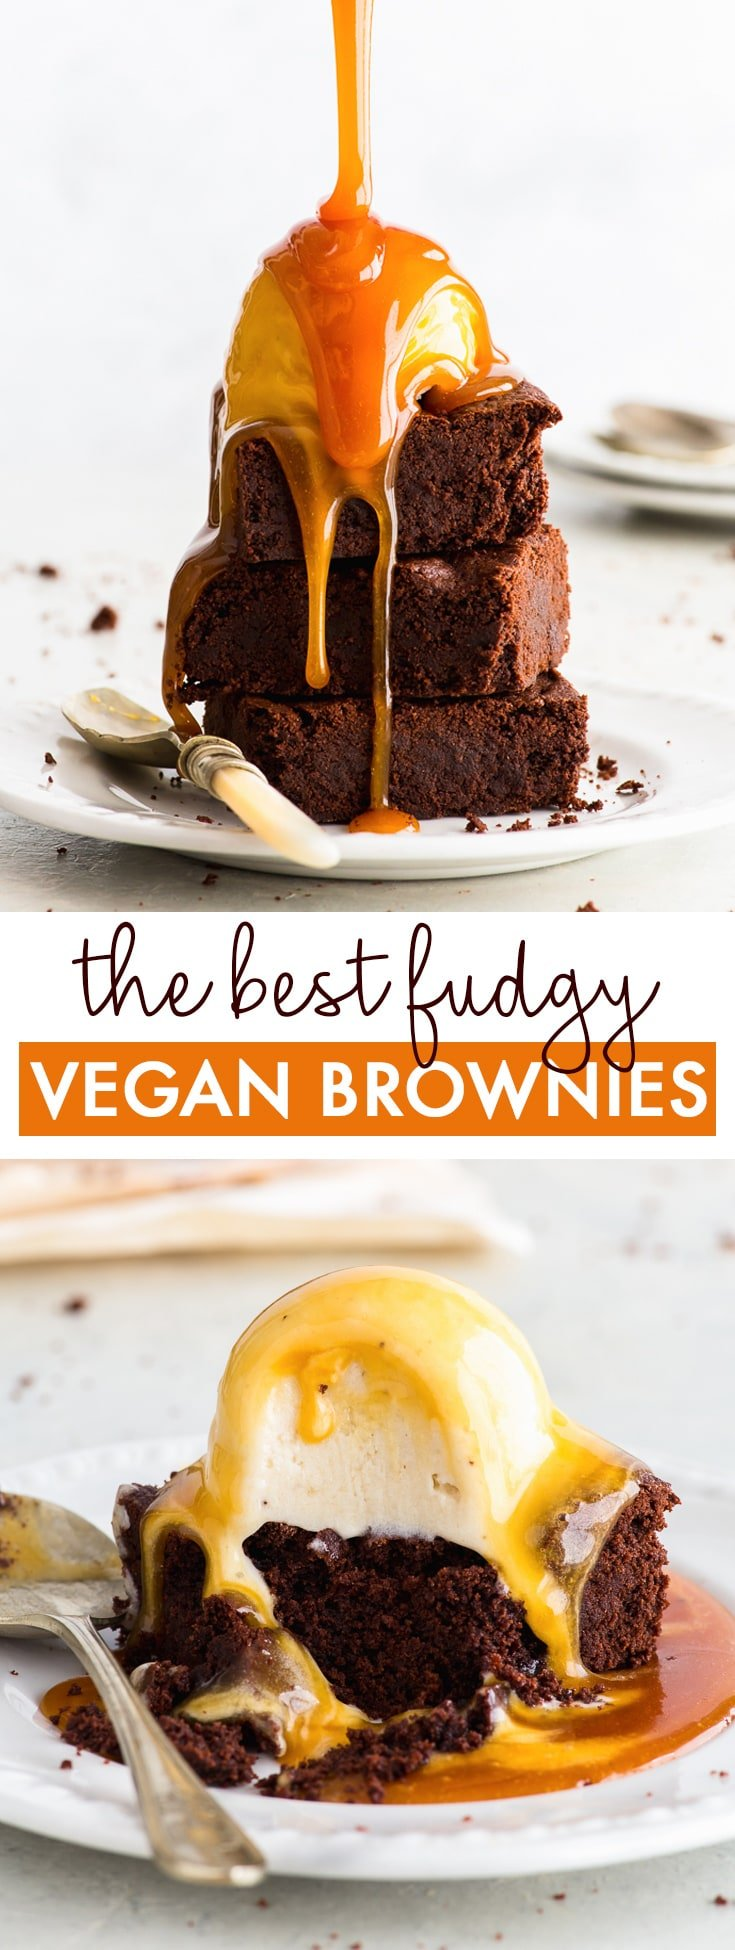 The Best Vegan Chocolate Brownies. Ever. - These vegan chocolate brownies will blow your mind. Decadent, fudgy and with an intense chocolate flavour, they are everything you'd want a brownie to be. Perfect with a scoop of vegan ice cream and smothered in a vegan salted caramel sauce. Fudgy brownies recipe. Easy brownie recipe. Caramel brownies. Vegan brownie recipe. Vegan desserts. Chocolate dessert recipes. Vegan recipes. Dairy free desserts. #brownies #vegan #dairyfree #chocolate #dessert